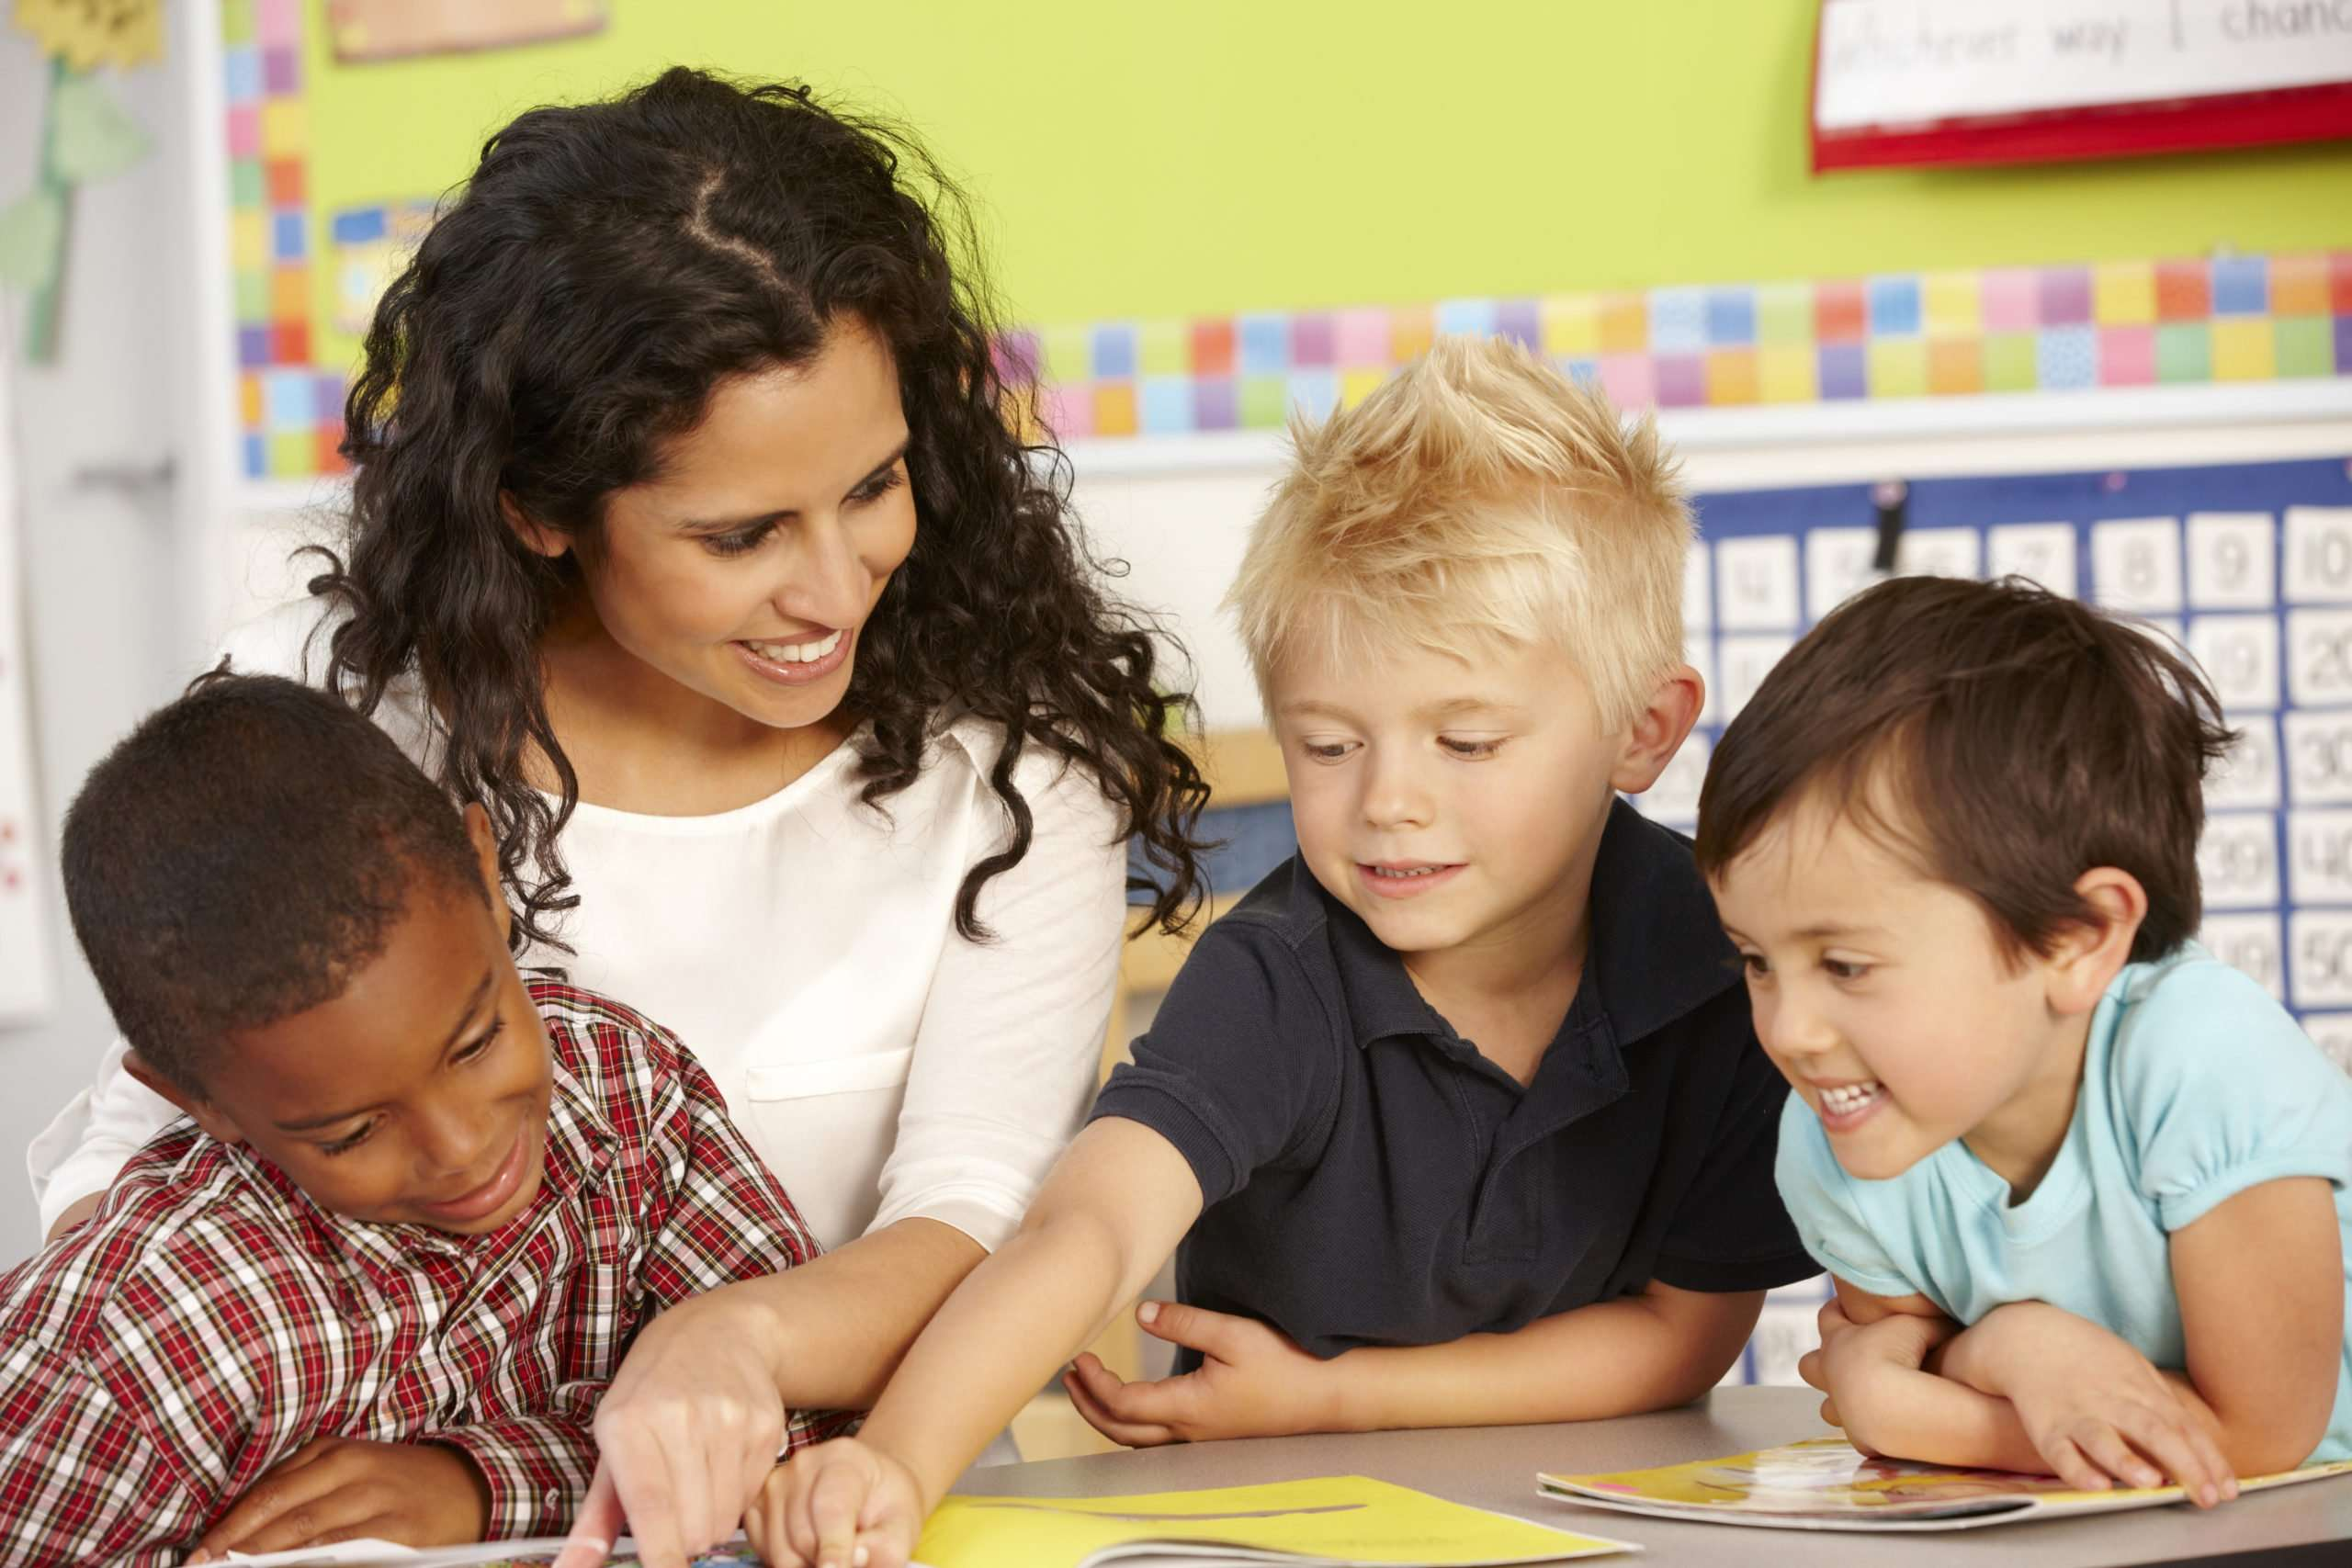 How to Build Rapport with Students